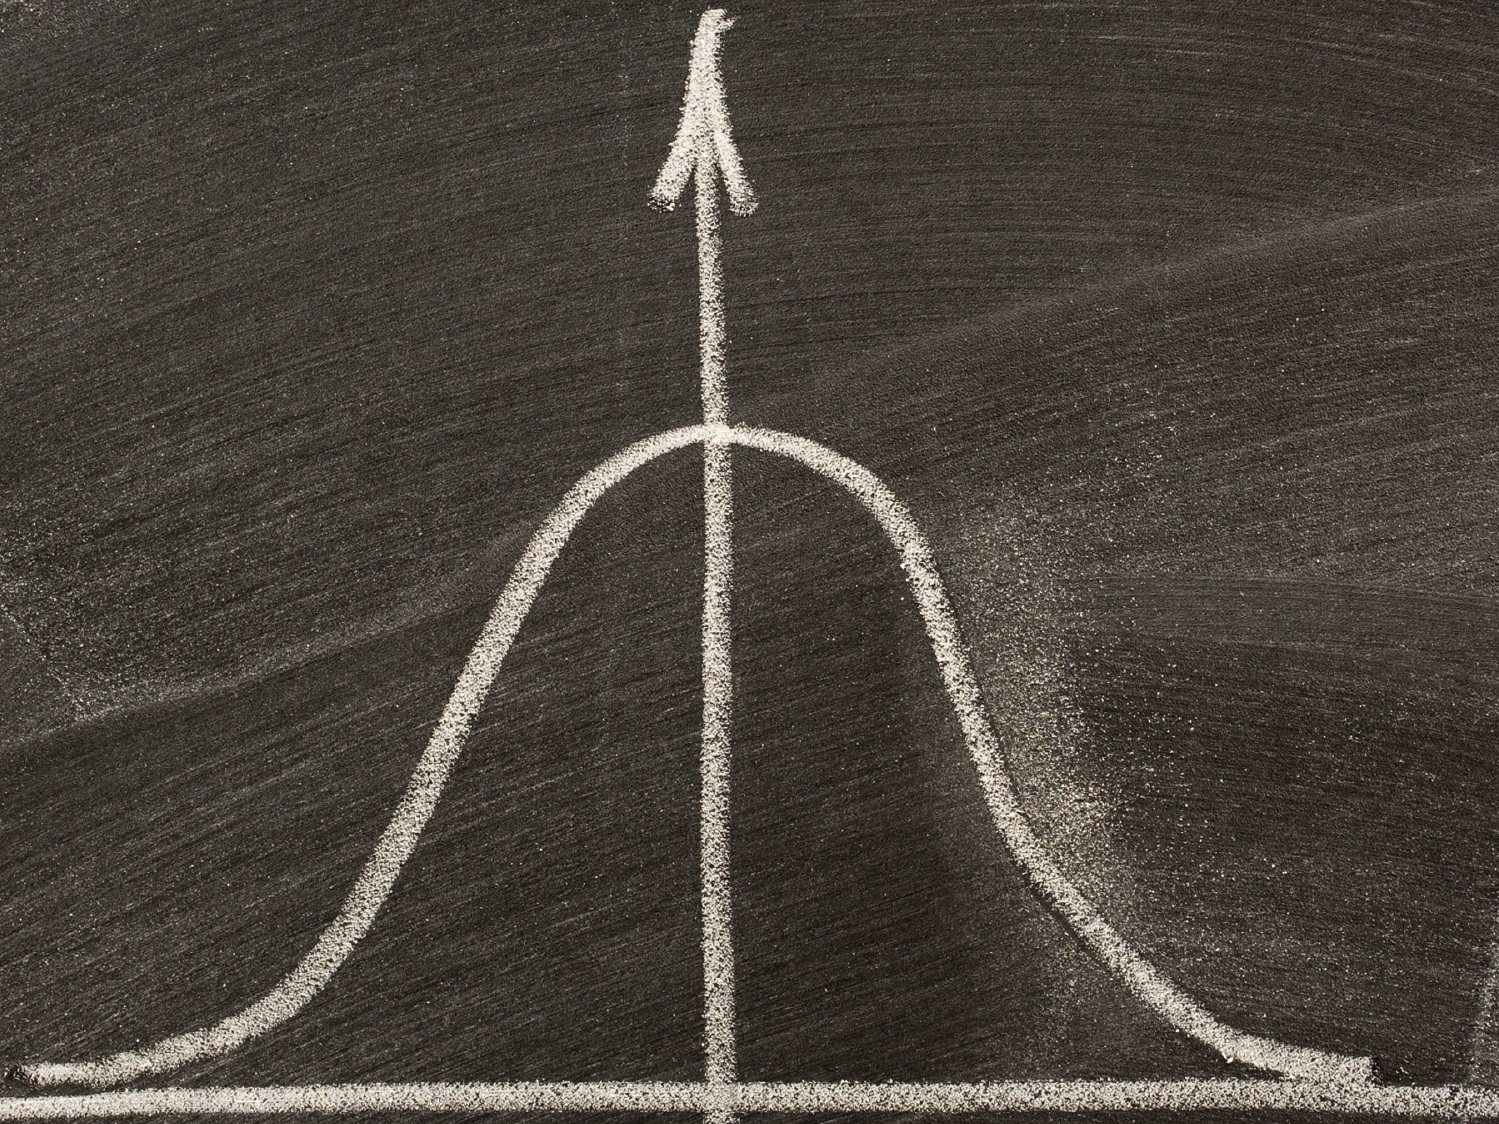 A/B testing, business analysis, and statistical significance